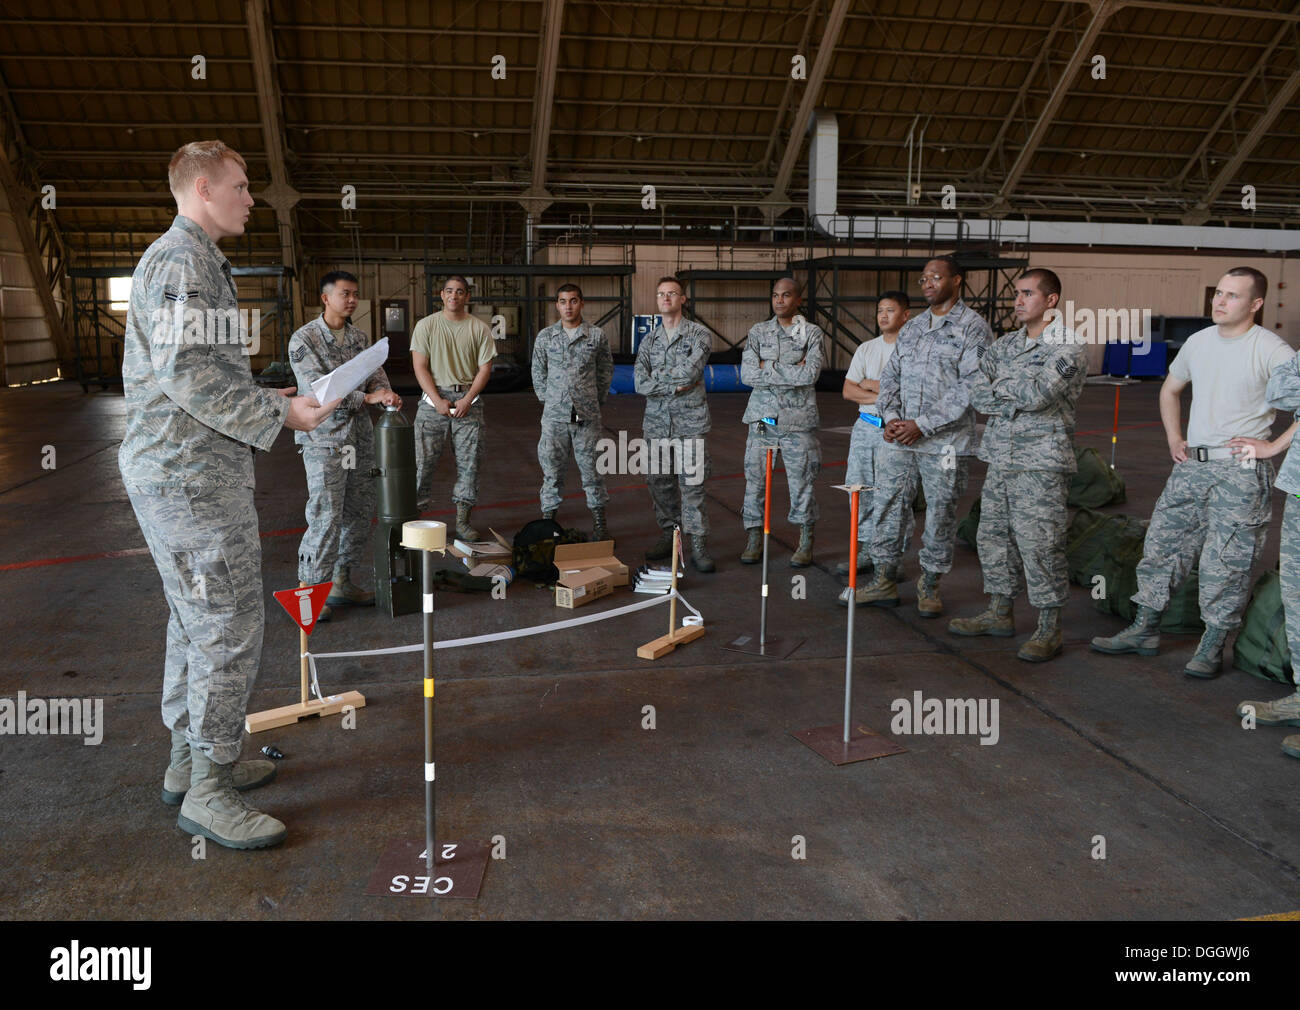 Airman 1st Class Trevor Greentree, 374th Civil Engineer Squadron, briefs Airman on unexploded ordinance detection and how to perform post attack reconnaissance correctly during the ability to survive and operate rodeo at Yokota Air Base, Japan, Oct. 8, 20 - Stock Image